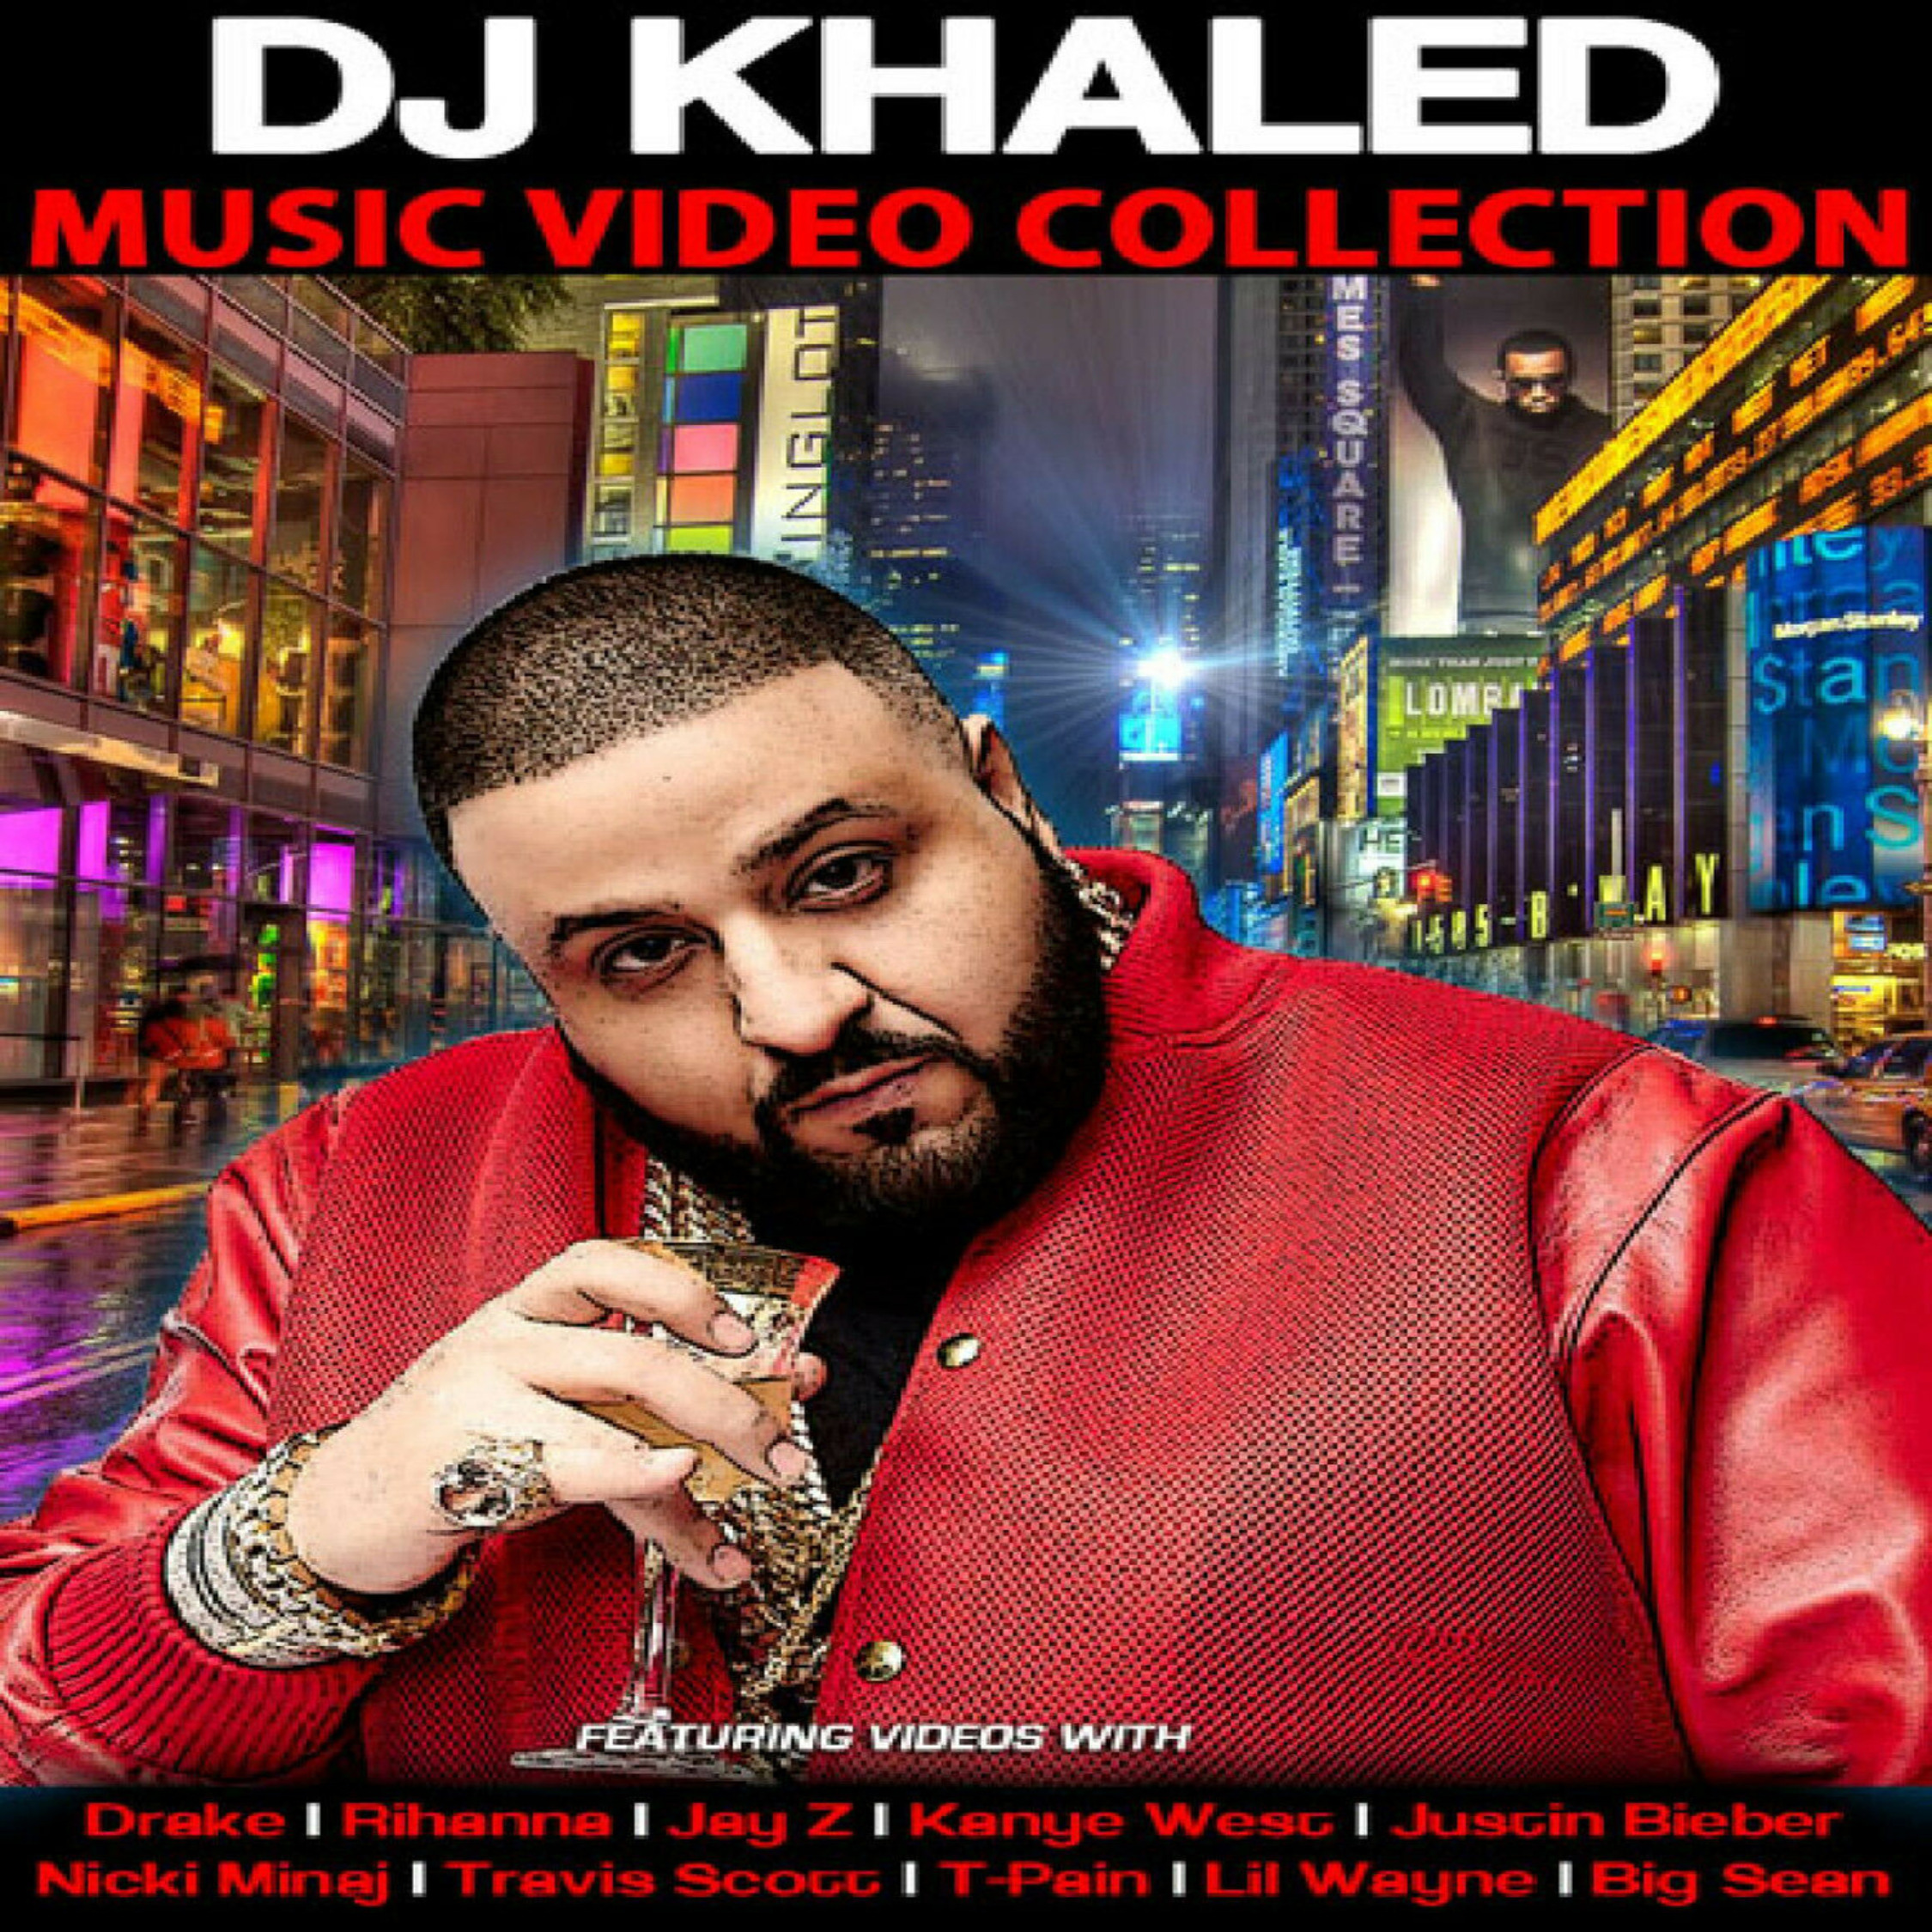 DJ KHALED - Music Video Collection MP4 Videos